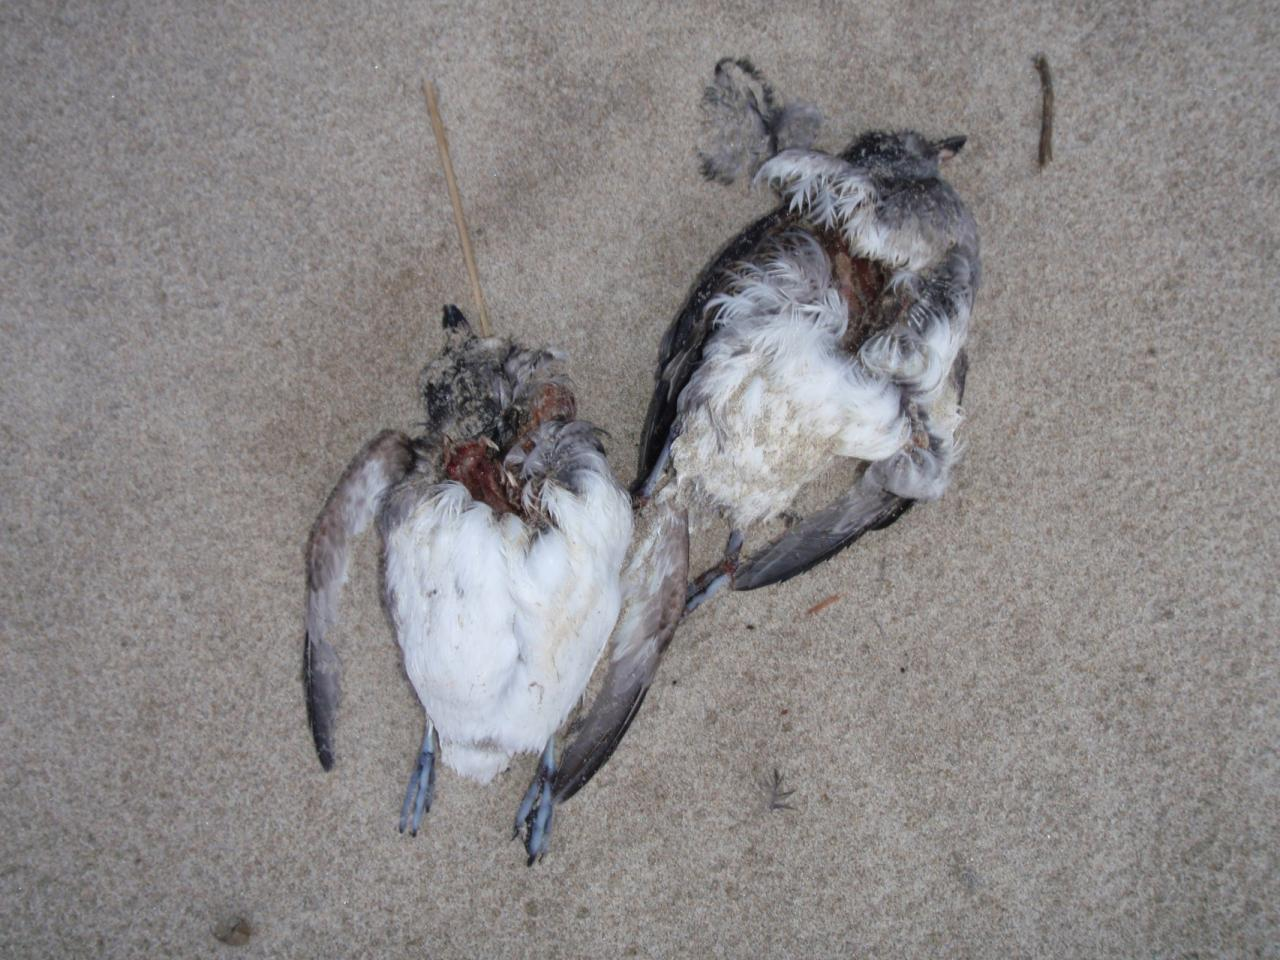 A couple examples of the Cassin's Auklet wreck.